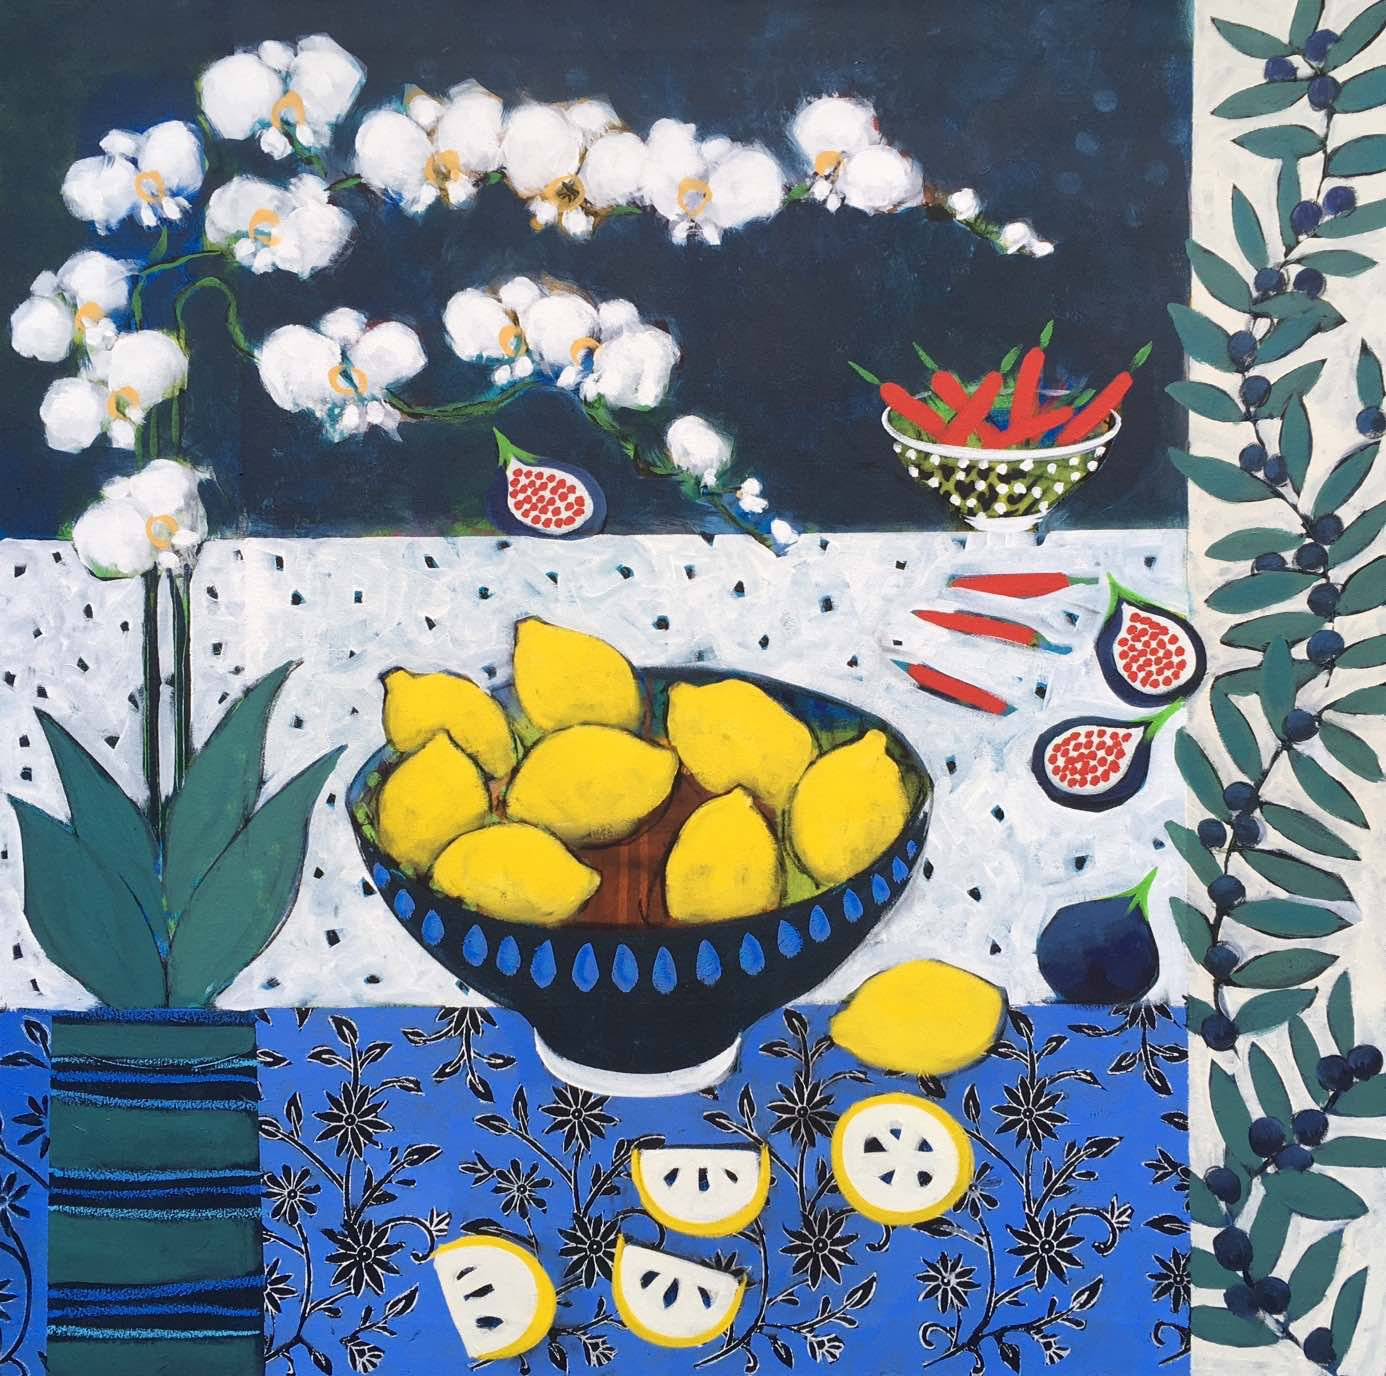 "<span class=""link fancybox-details-link""><a href=""/artists/59-relton-marine/works/2020-relton-marine-orchid-and-lemons/"">View Detail Page</a></span><div class=""artist""><strong>Relton Marine</strong></div> <div class=""title""><em>Orchid and Lemons</em></div> <div class=""medium"">Acrylic on Canvas</div> <div class=""dimensions"">91 x 91 cm</div><div class=""copyright_line"">Copyright The Artist</div>"